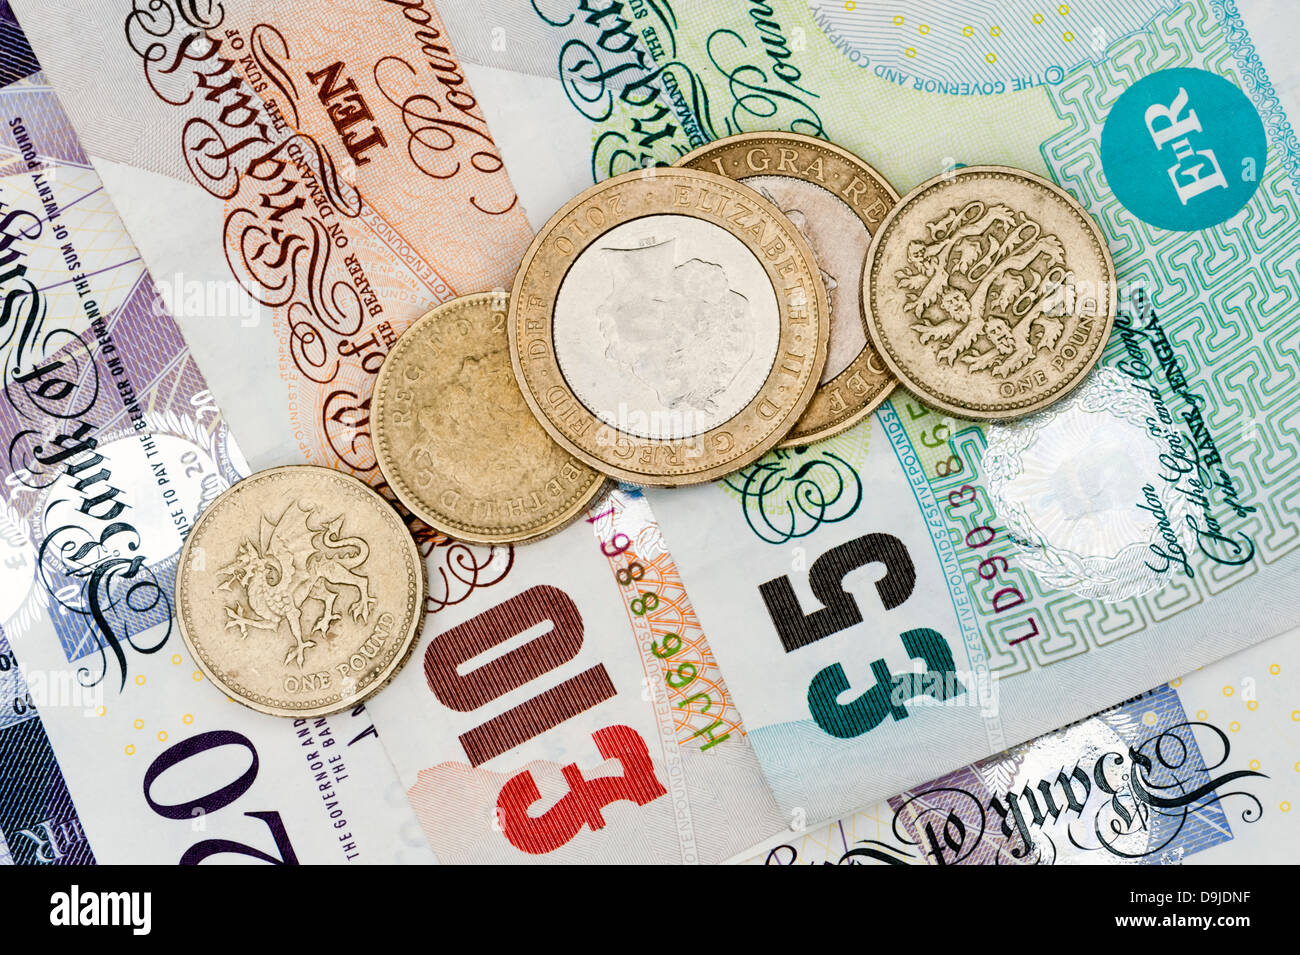 Money pounds coins cash sterling UK. - Stock Image